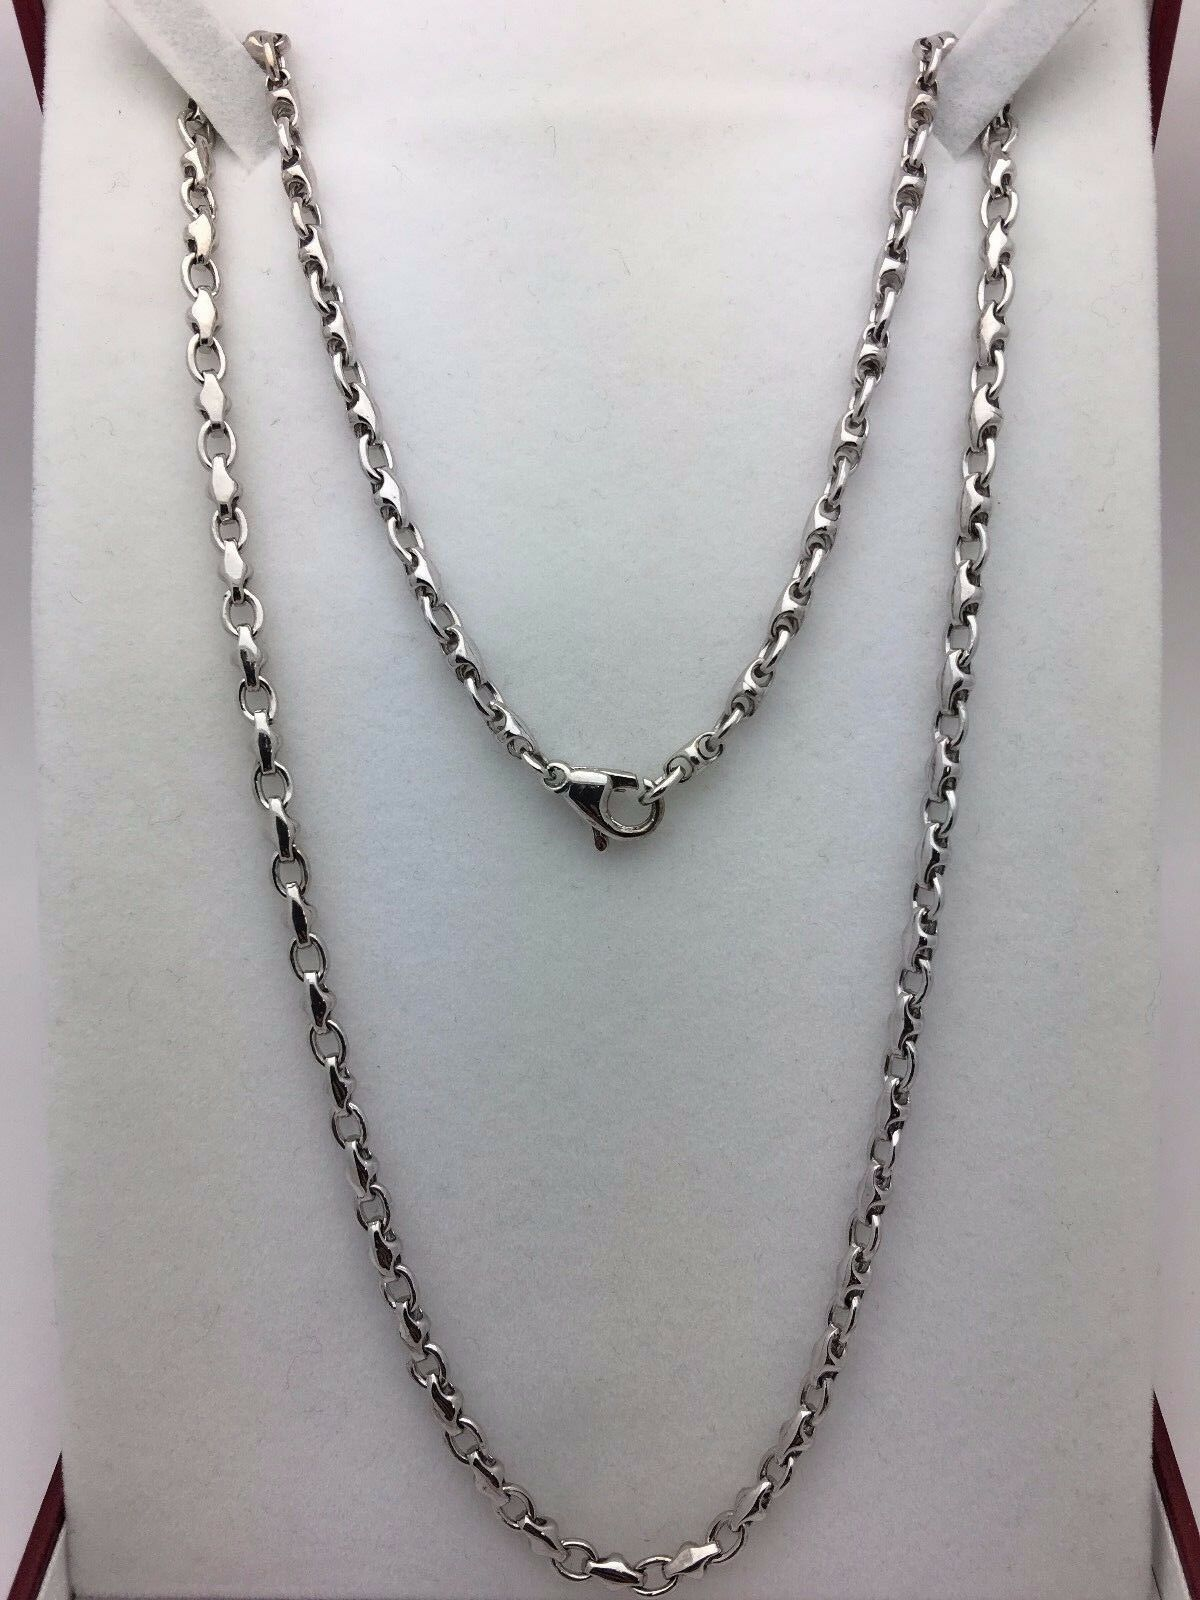 10k White Gold Handmade Fashion Link Necklace 20 Quot 4mm 23 5